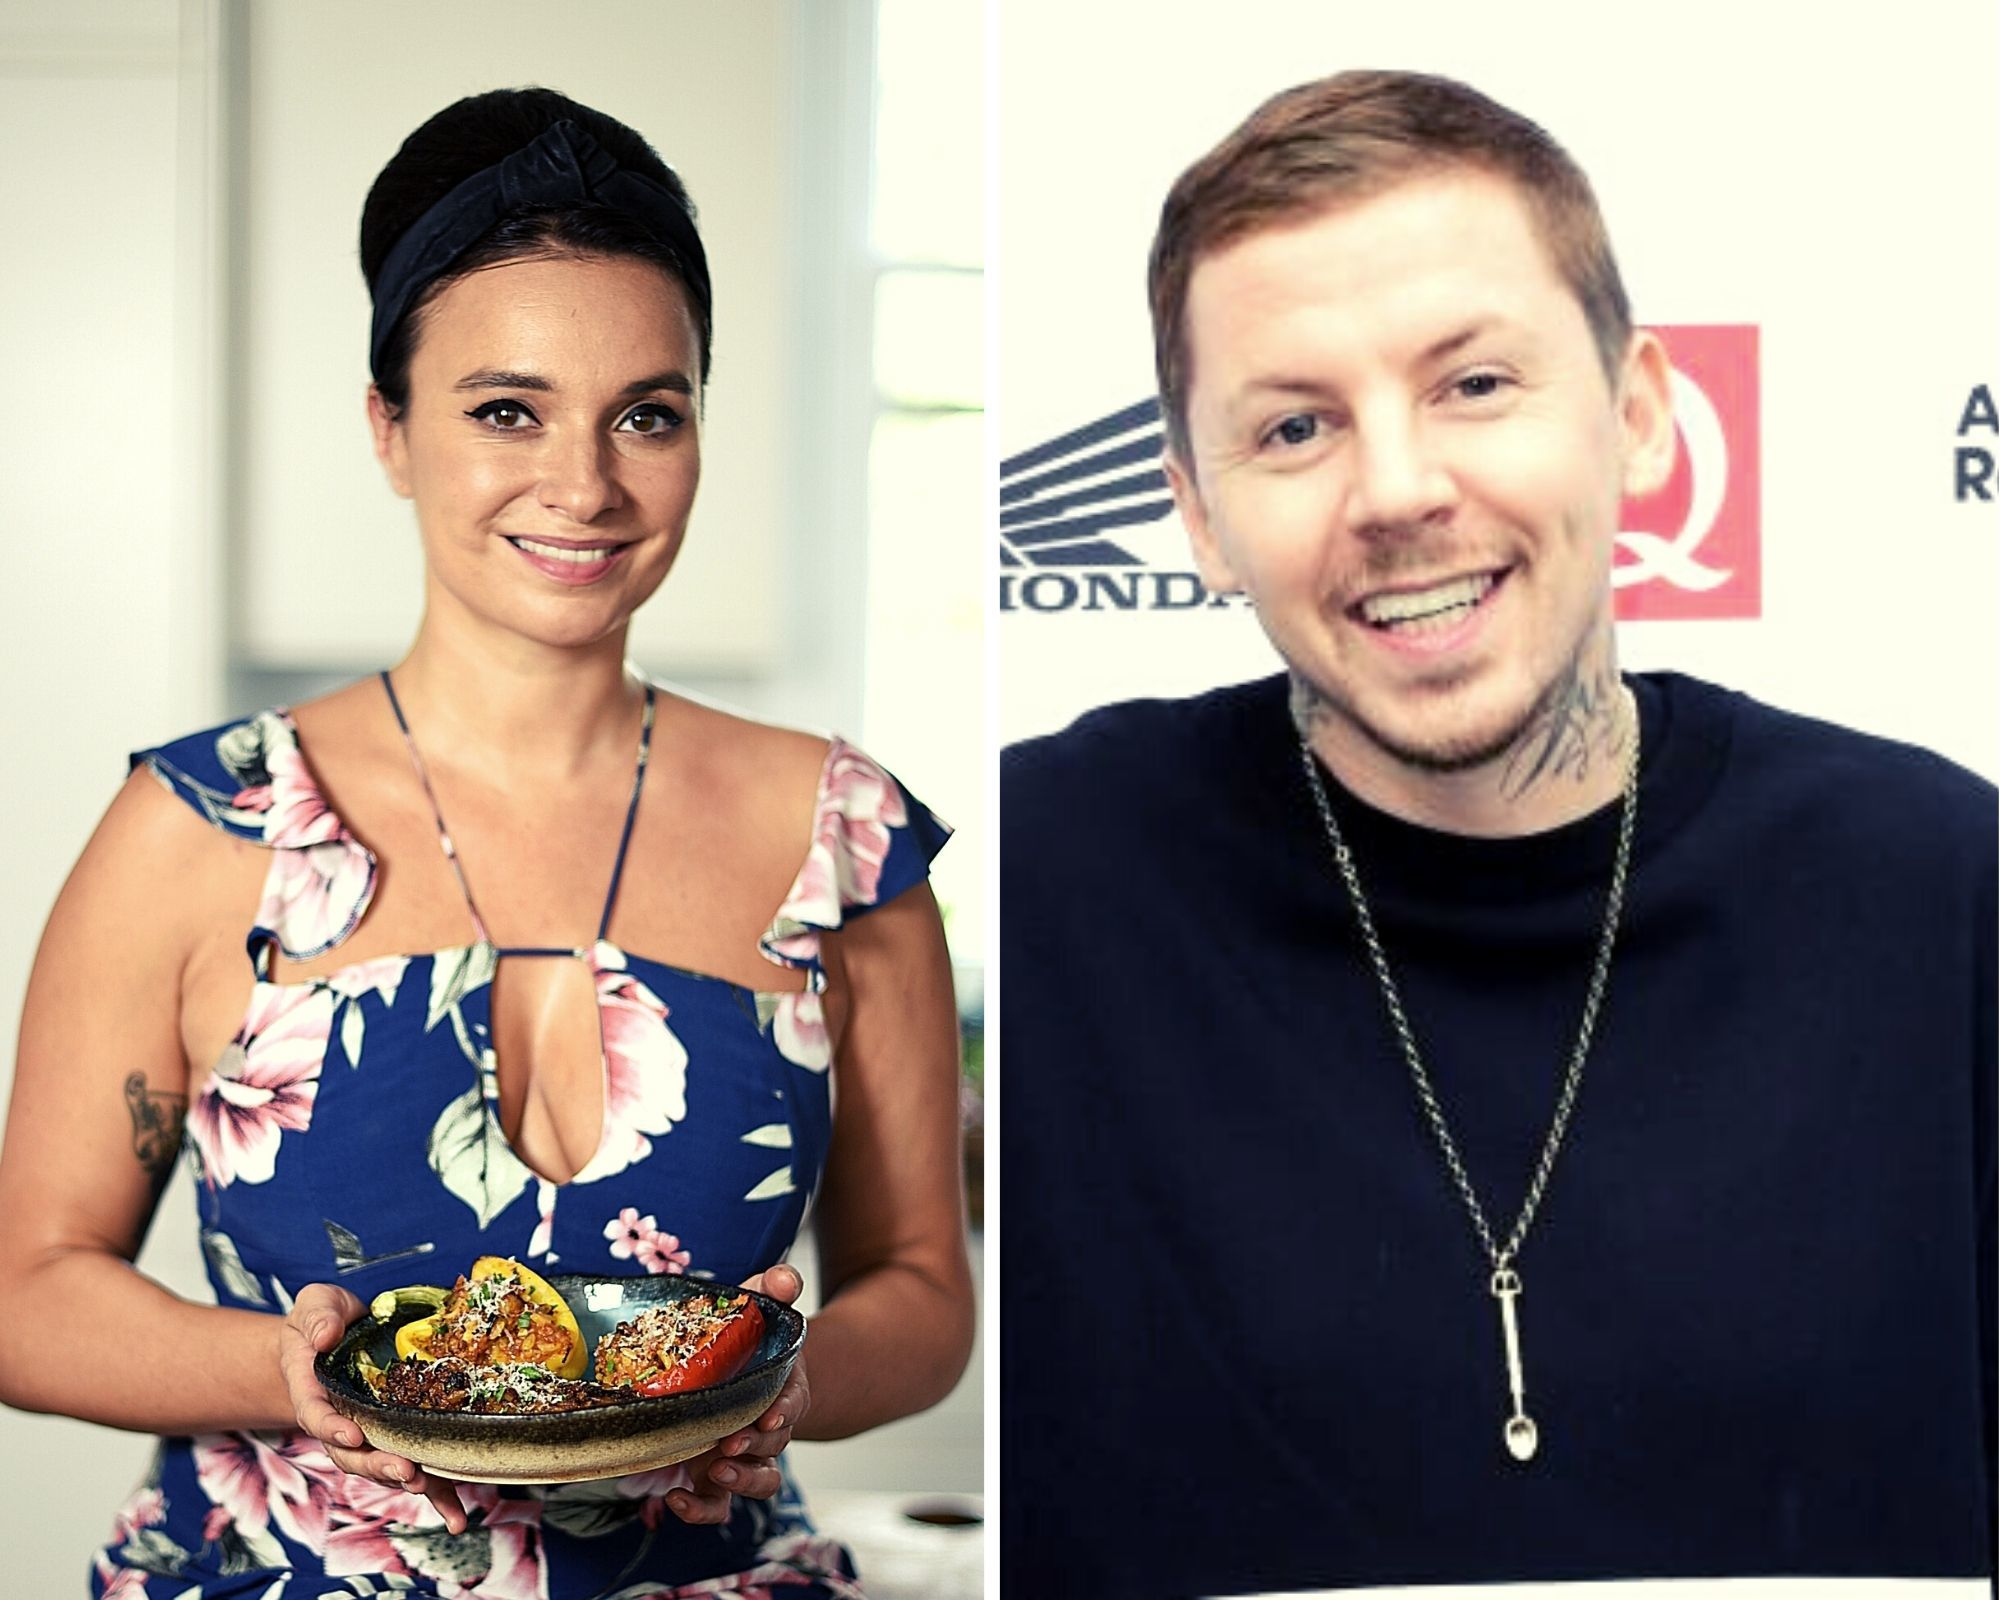 Rapper teams up with TV chef for tasty Feastival duet